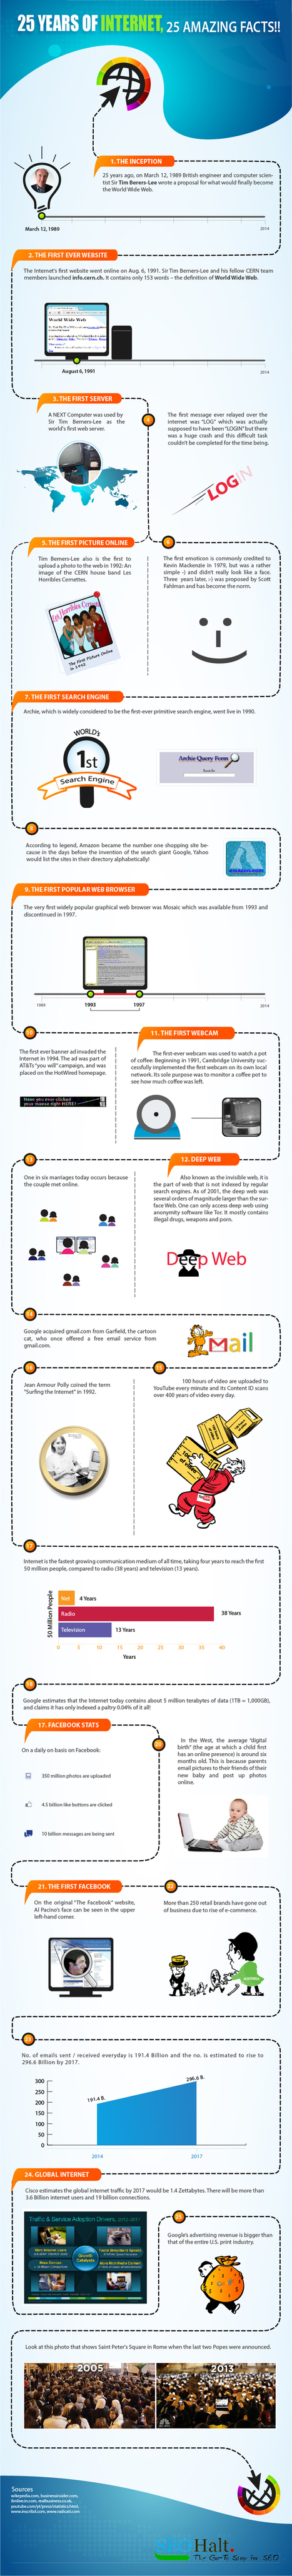 25 Amazing Facts about the Internet [Infographic] | Let us learn together... | Scoop.it